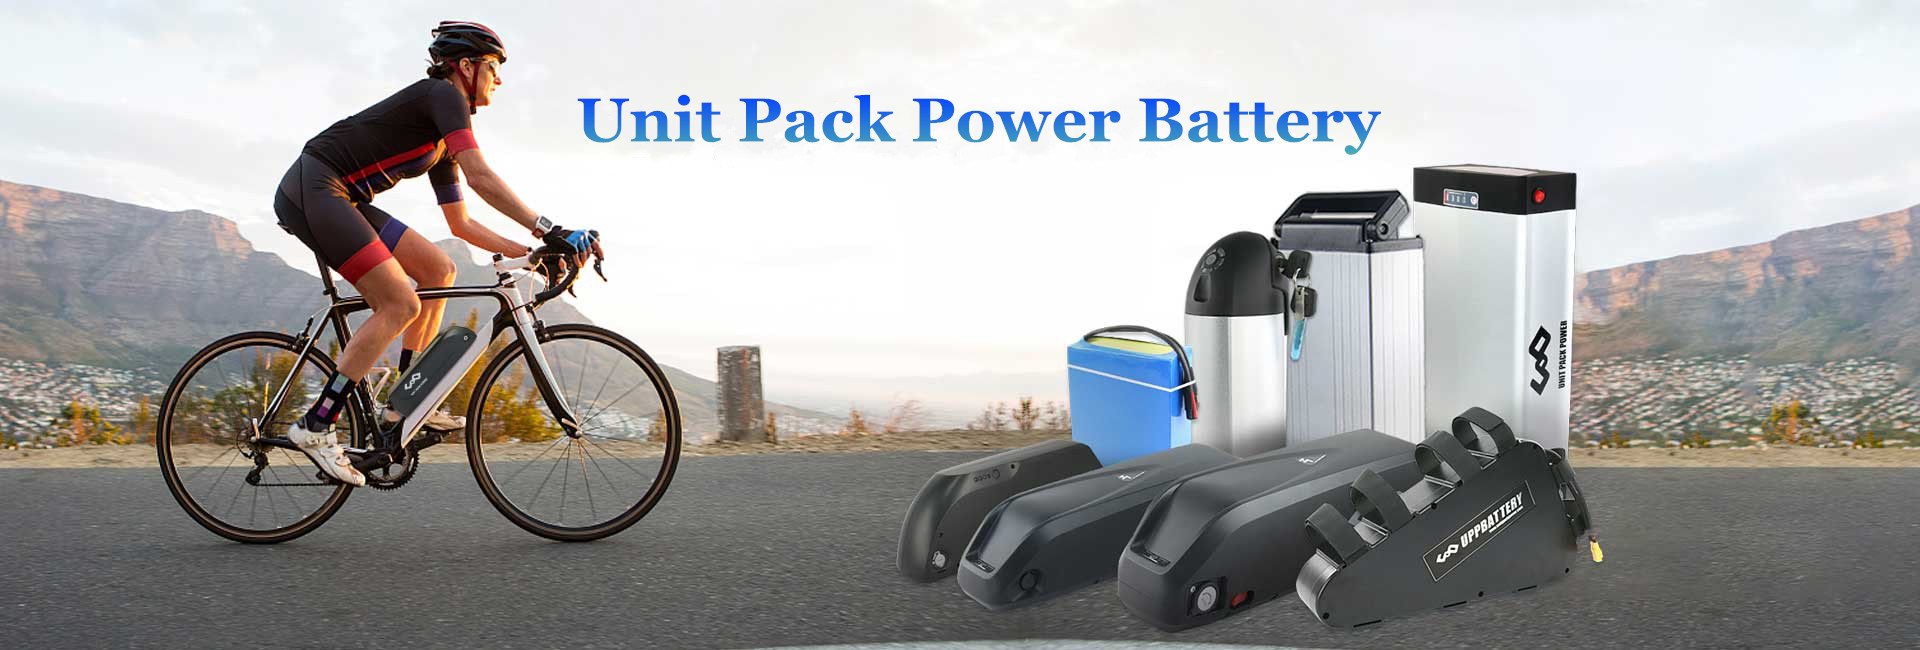 Hot selling R049-2 New HAILONG Ebike battery